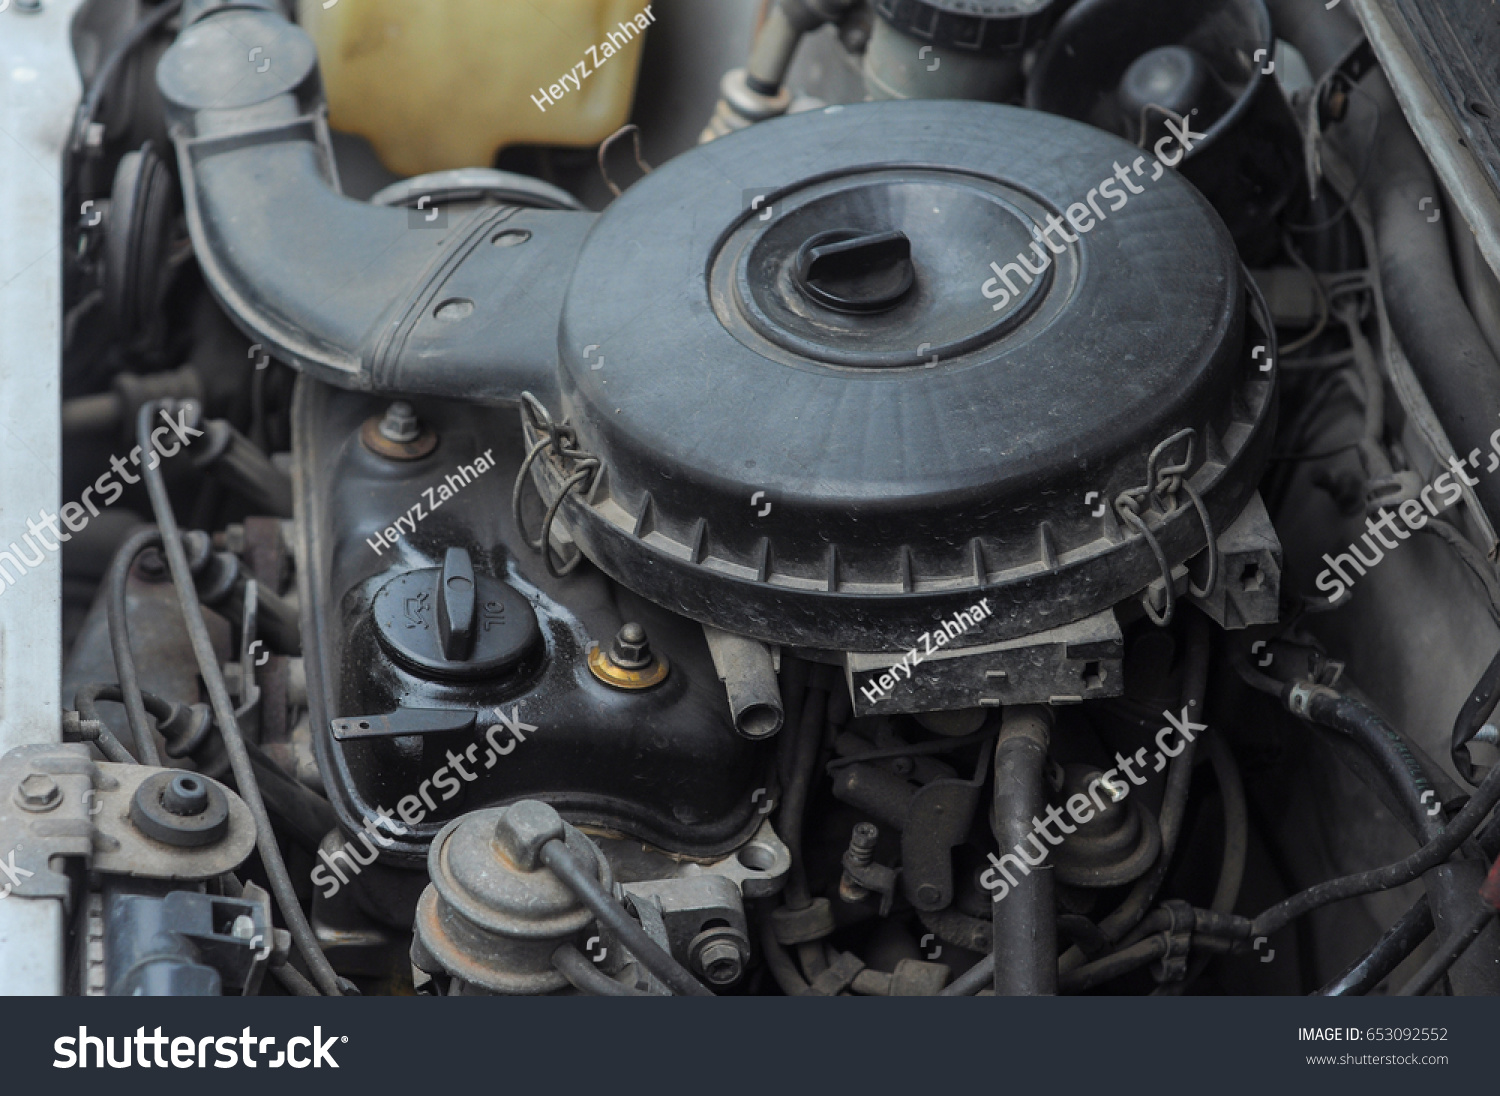 Old Car Engine Stock Photo 653092552 - Shutterstock